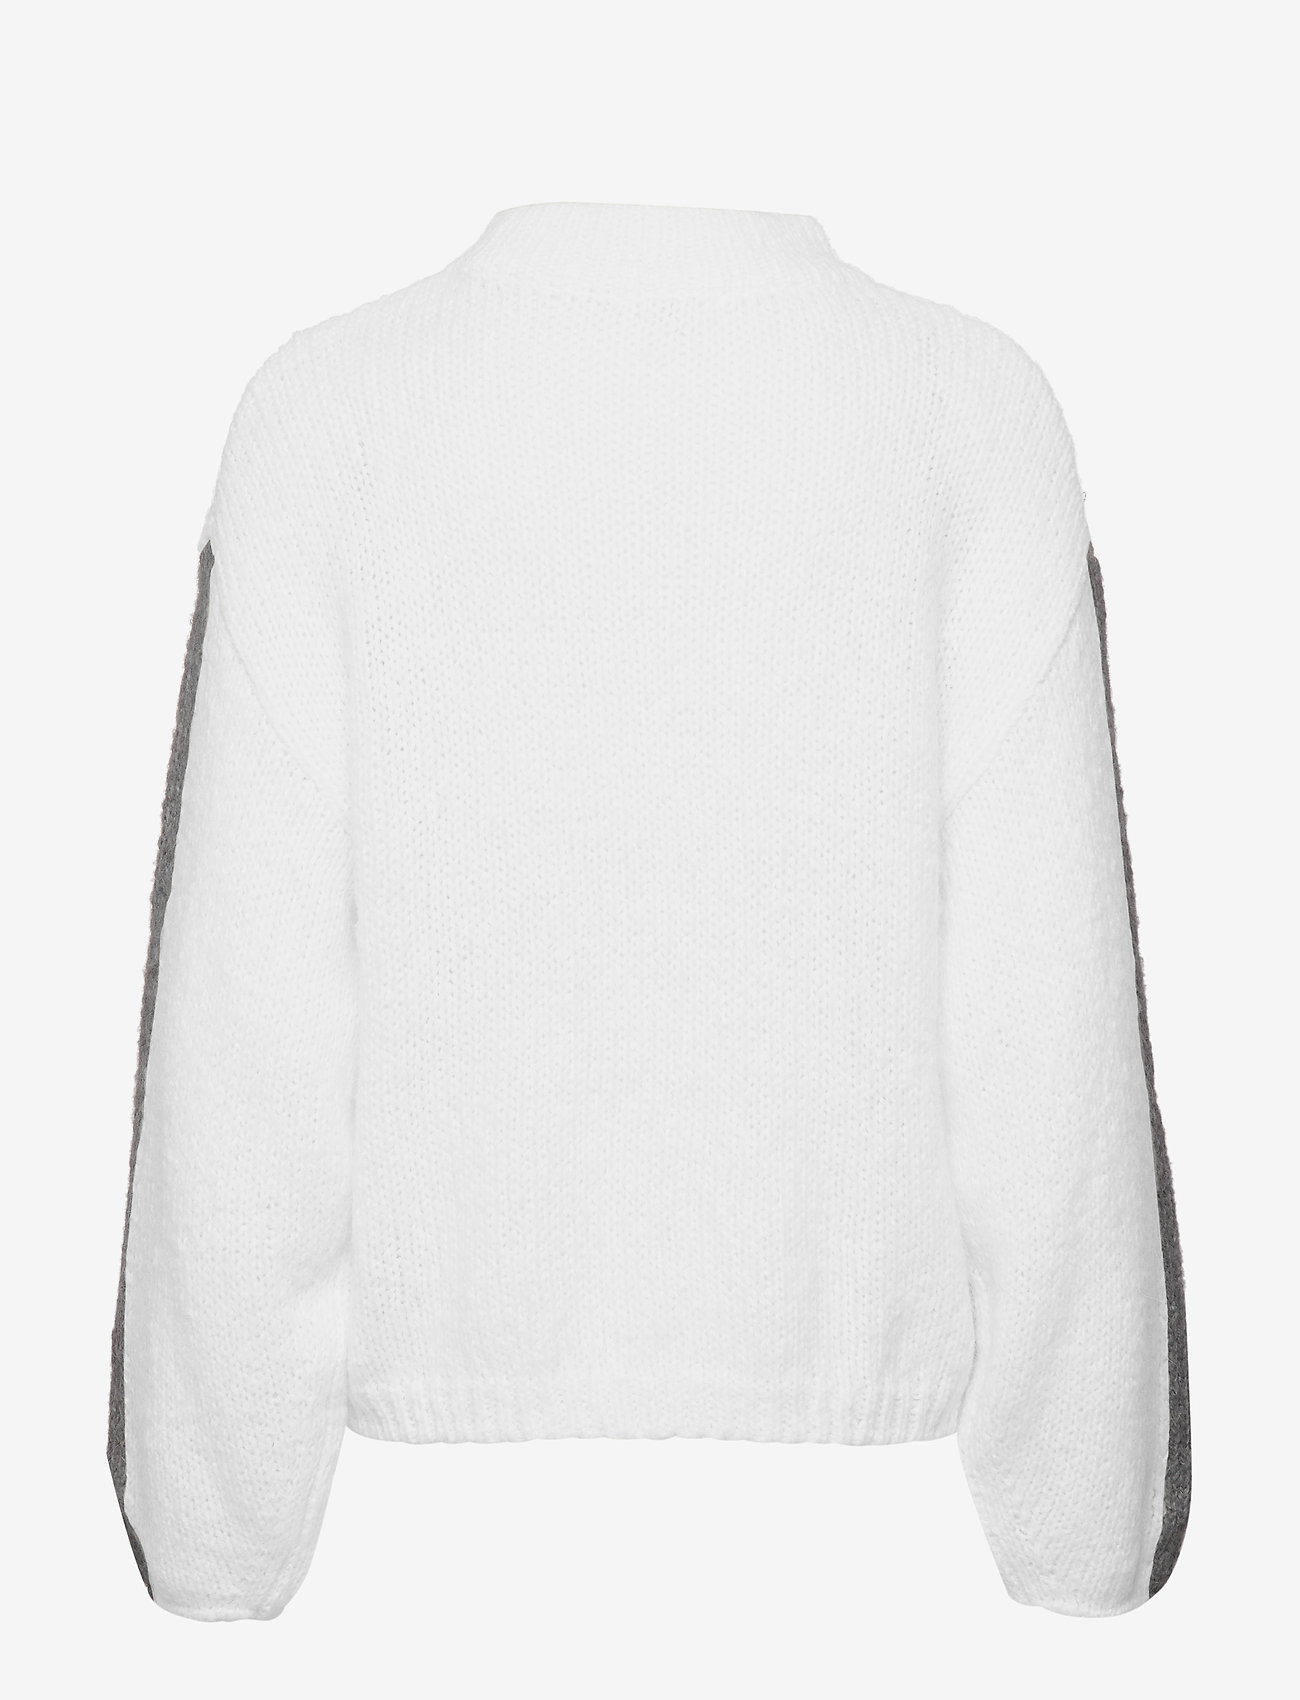 Lee Jeans - CHUNKY KNIT - gensere - off white - 1